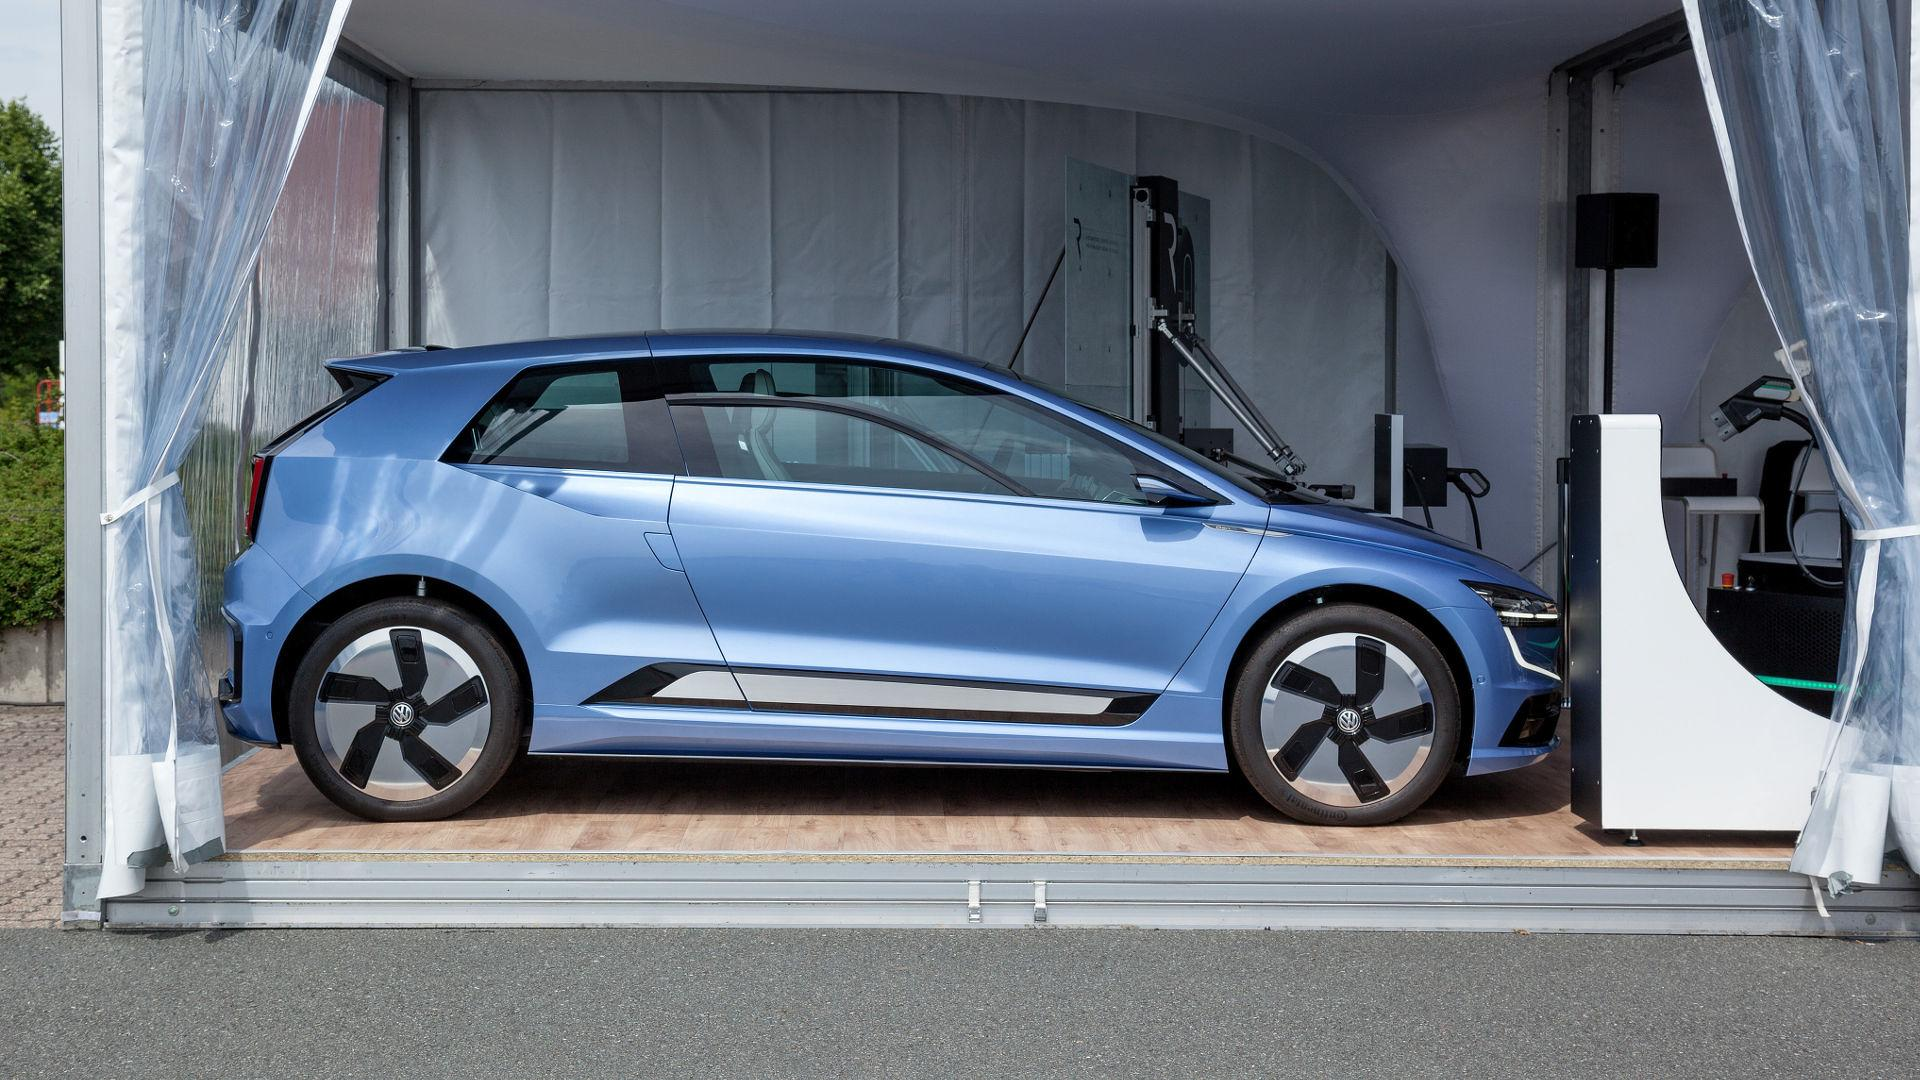 2019 Vw Golf Details Emerge Lighter, More Powerful Gti And R